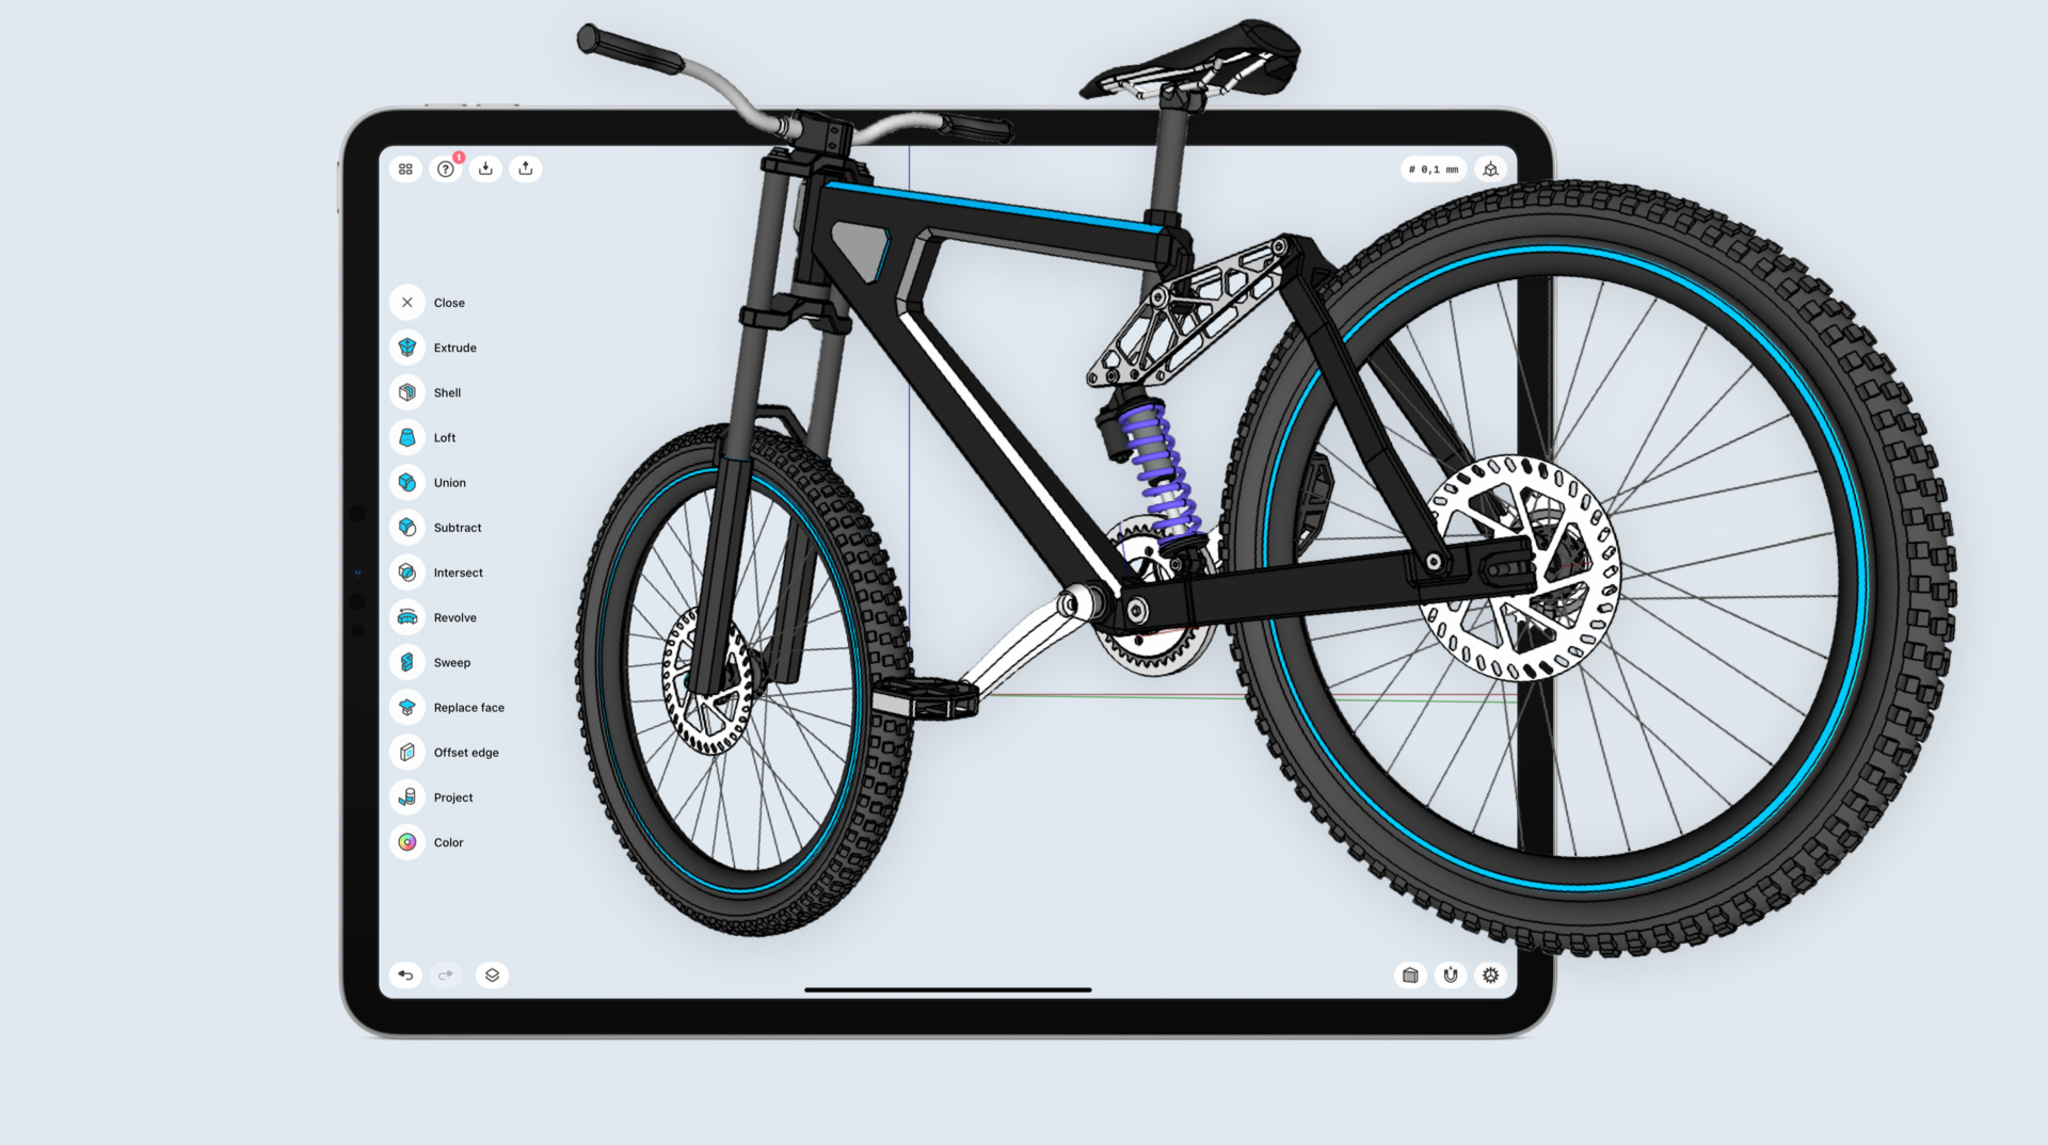 Shapr 3D bike drawing coming out of ipad